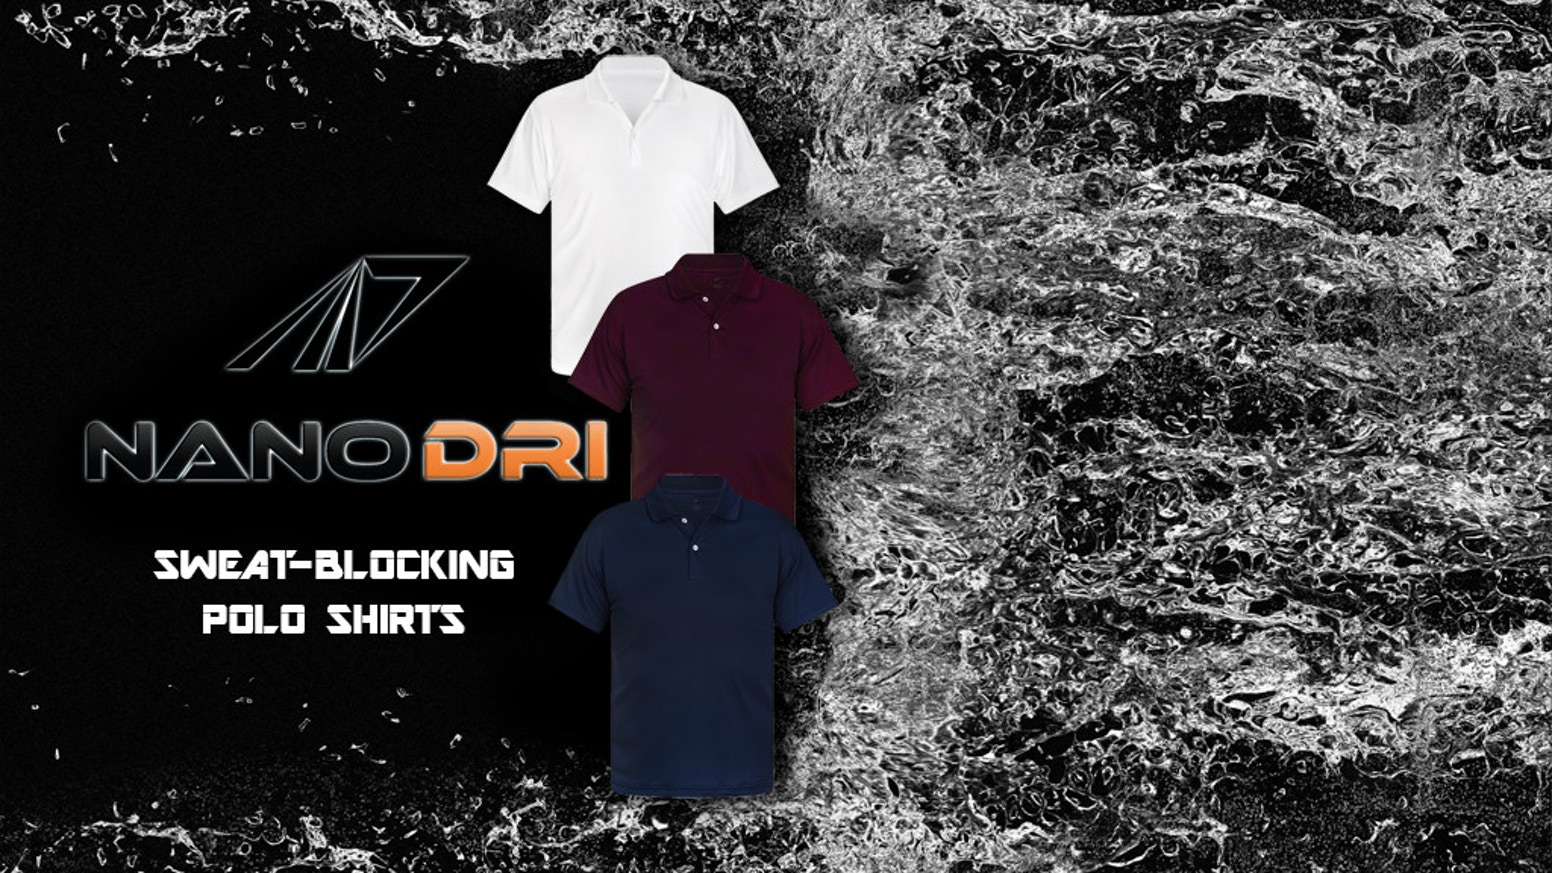 4cdc98cb8e3d Luxurious polo shirts that utilize Japanese nanotechnology to hide your sweat  stains and keep you looking cool